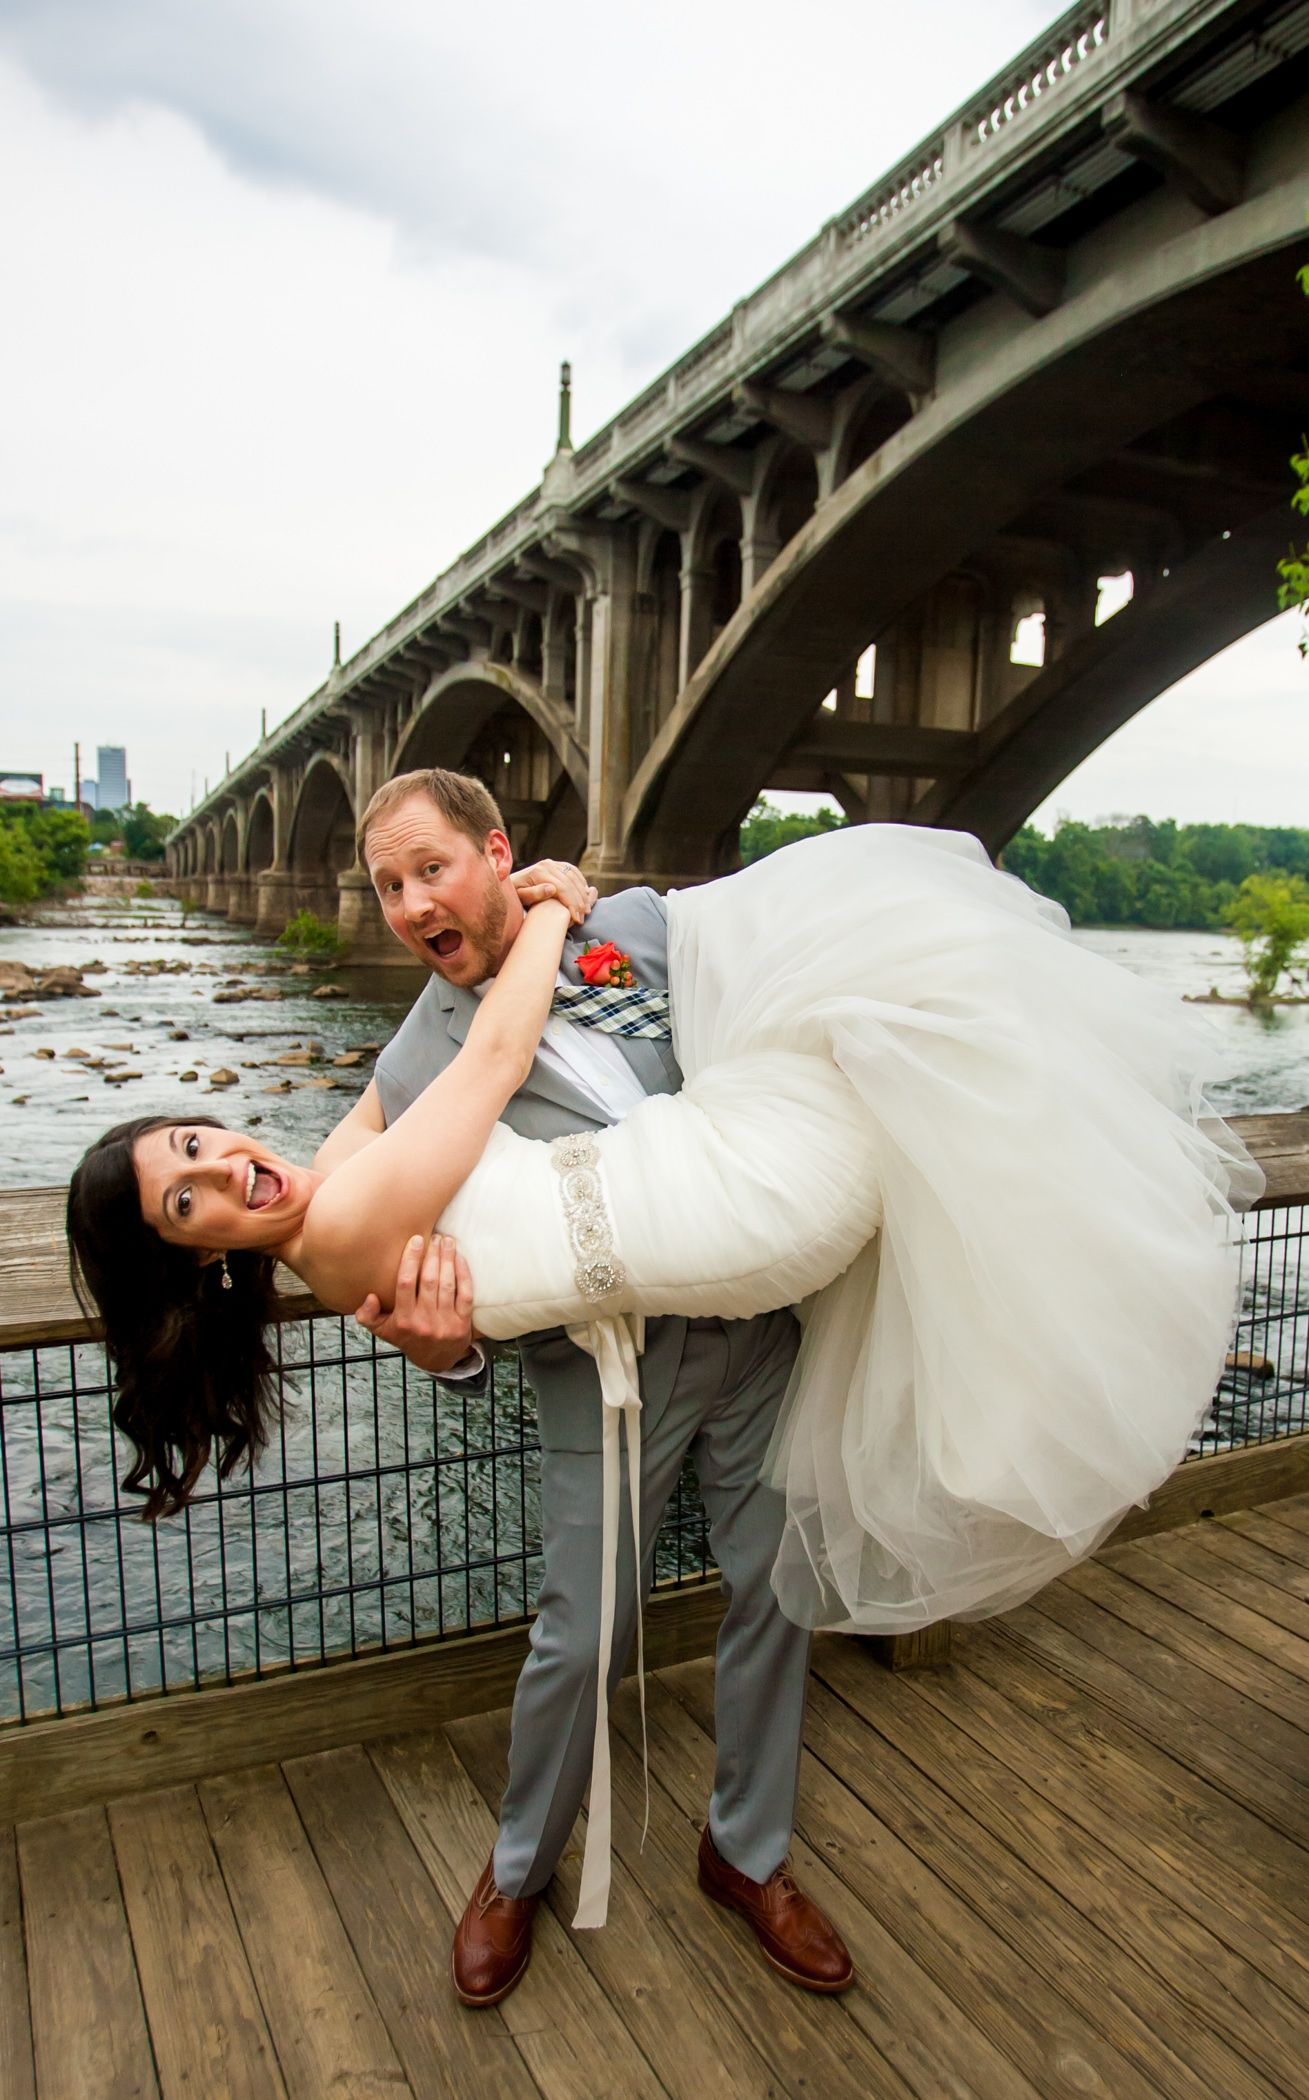 Wedding at Gervais Street Bridge Stone River by Columbia, SC, Wedding Photographer Jeff Blake